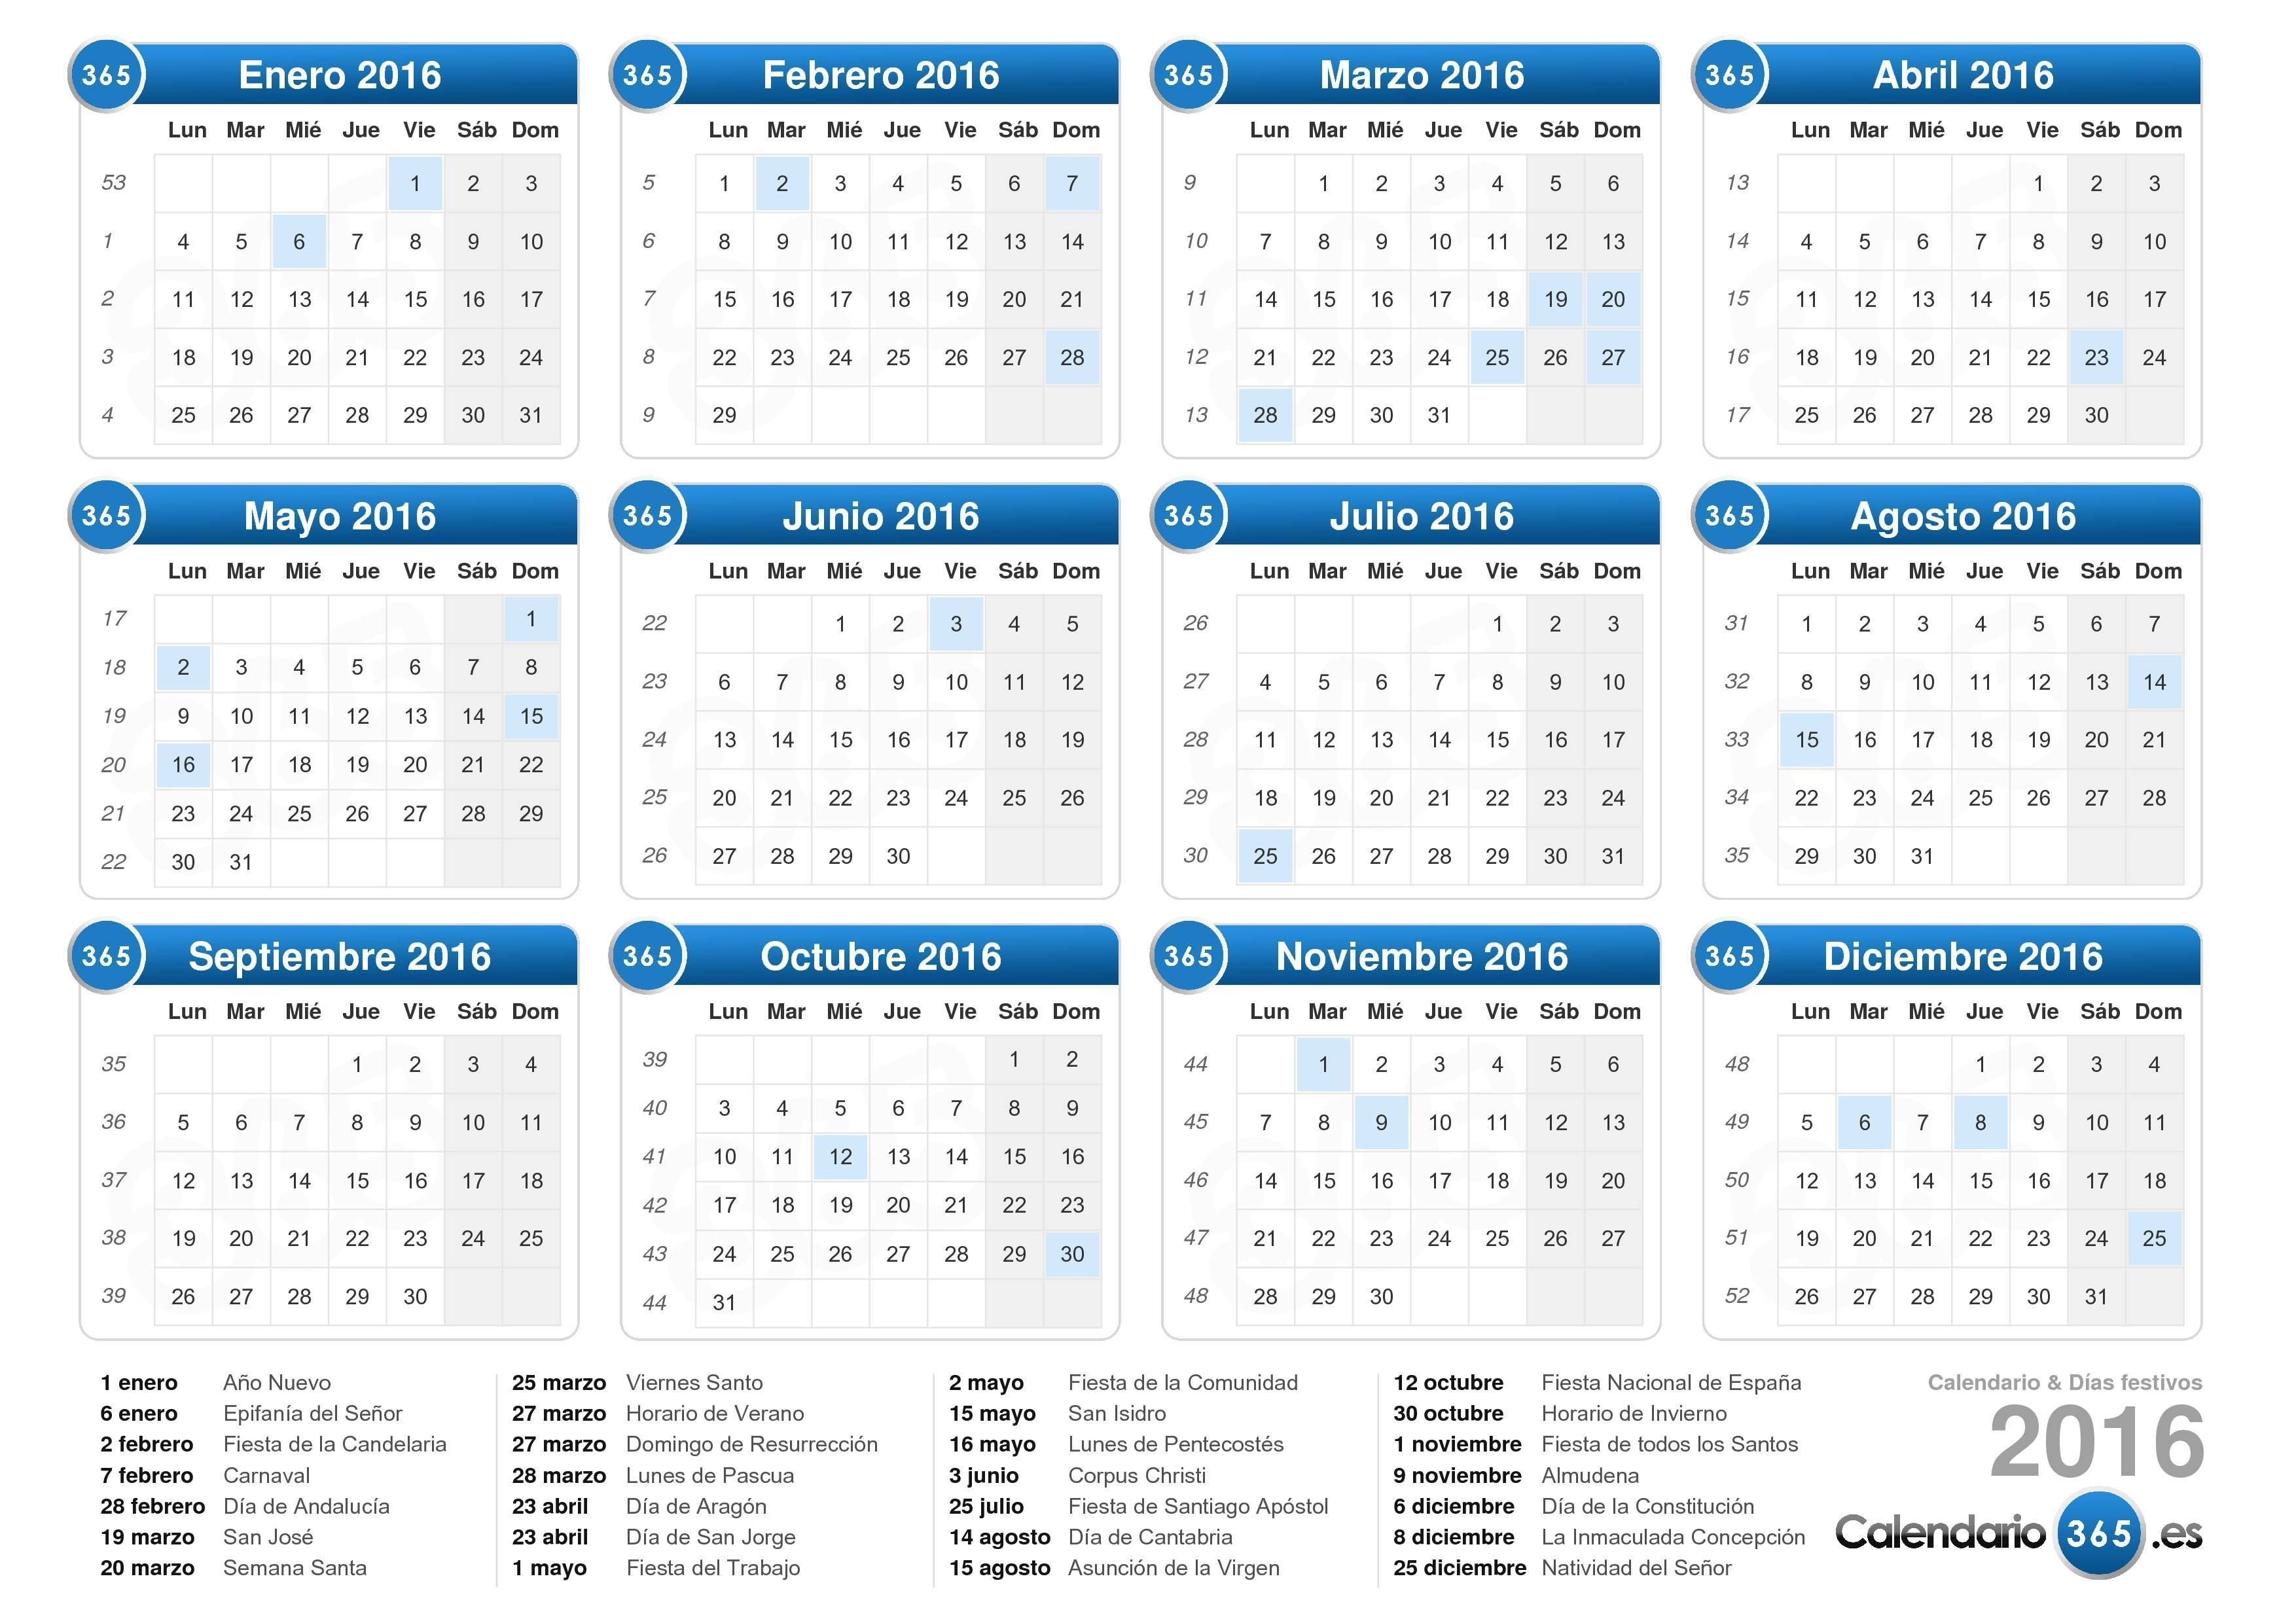 Calendario De 2019 Semana Santa En Más Recientemente Liberado Mireya Sanchez Msmirlos On Pinterest